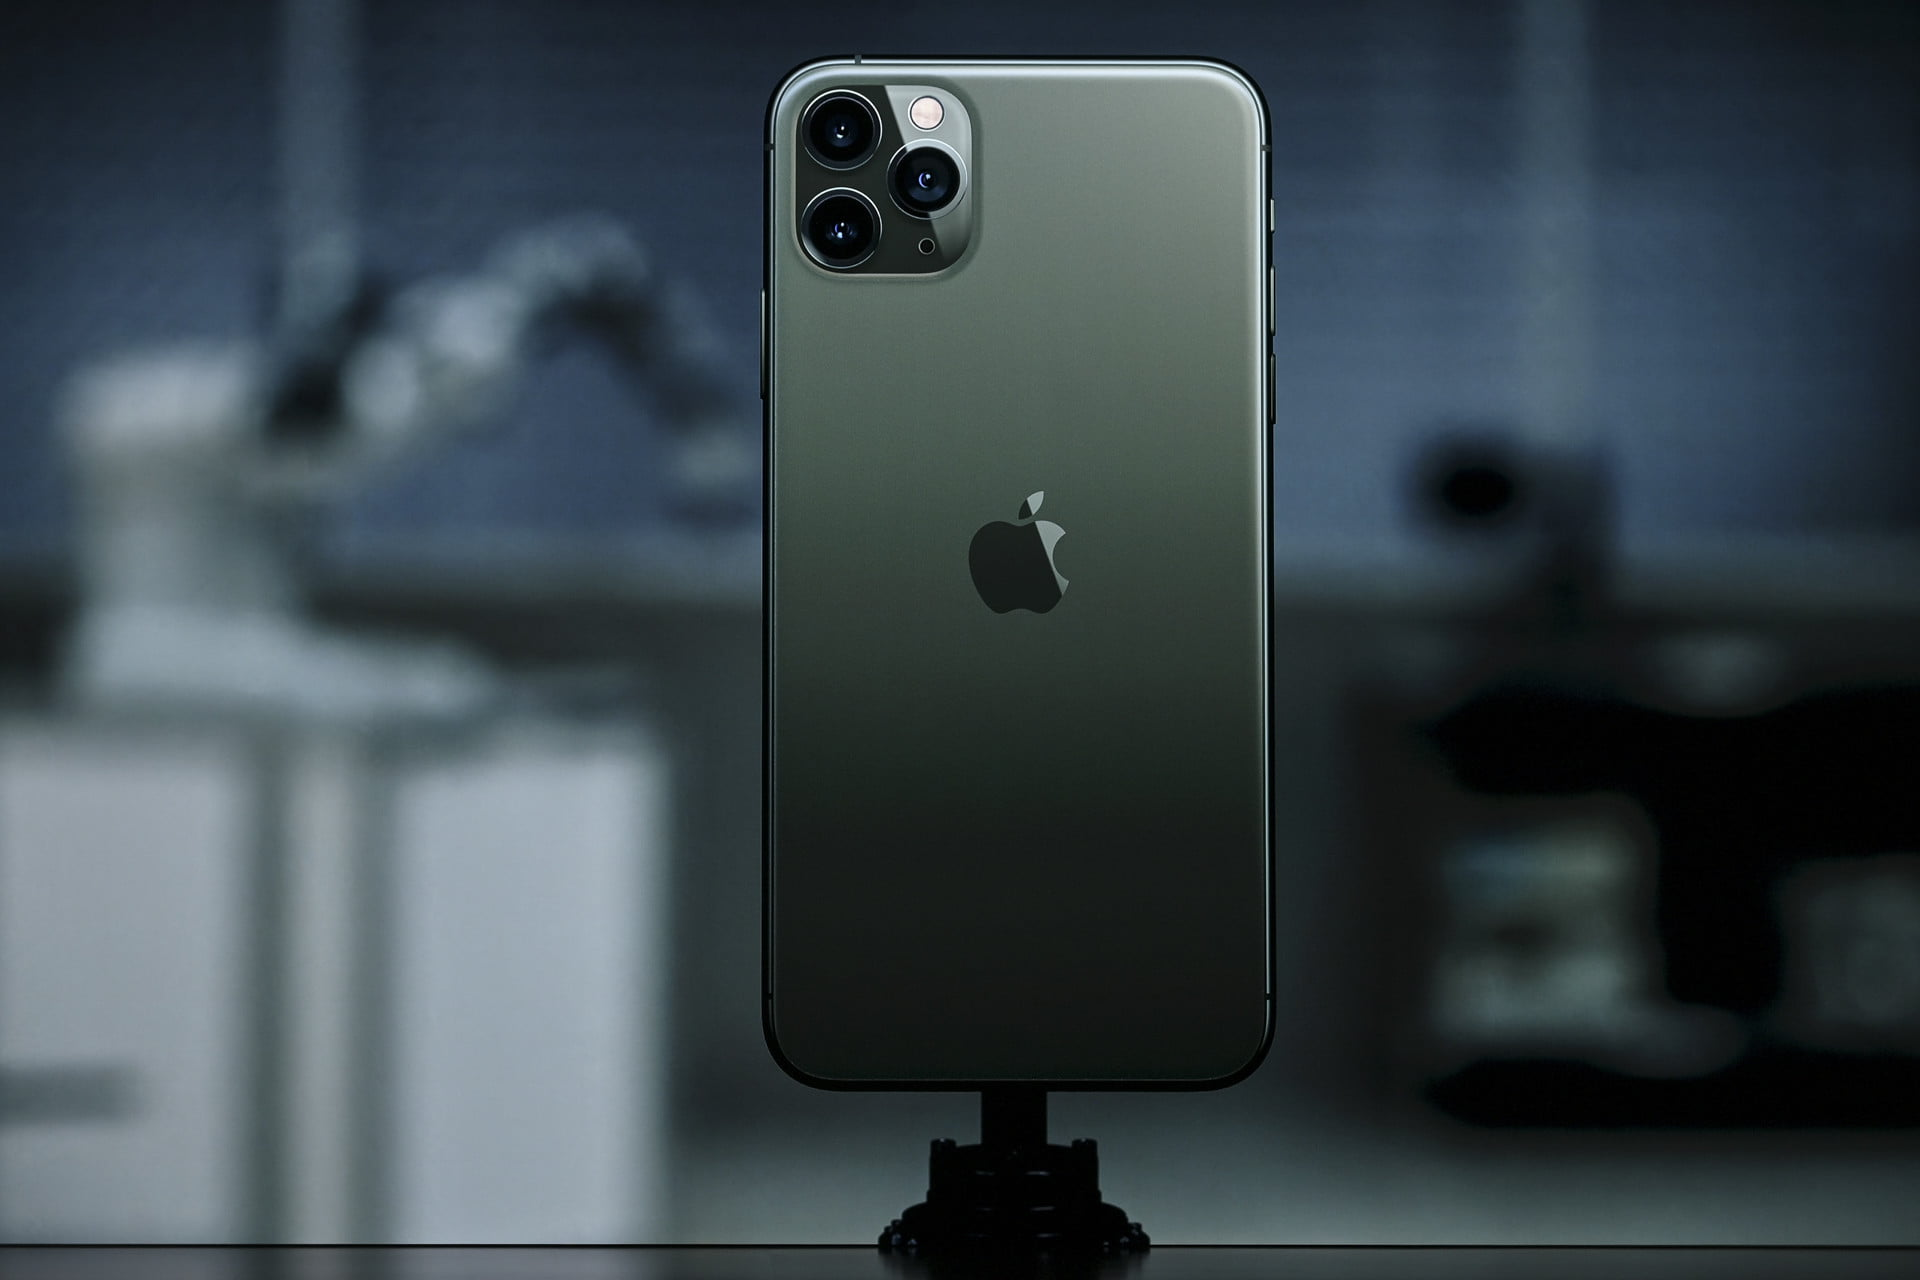 Image result for iPhone 11 Pro Max - HD images